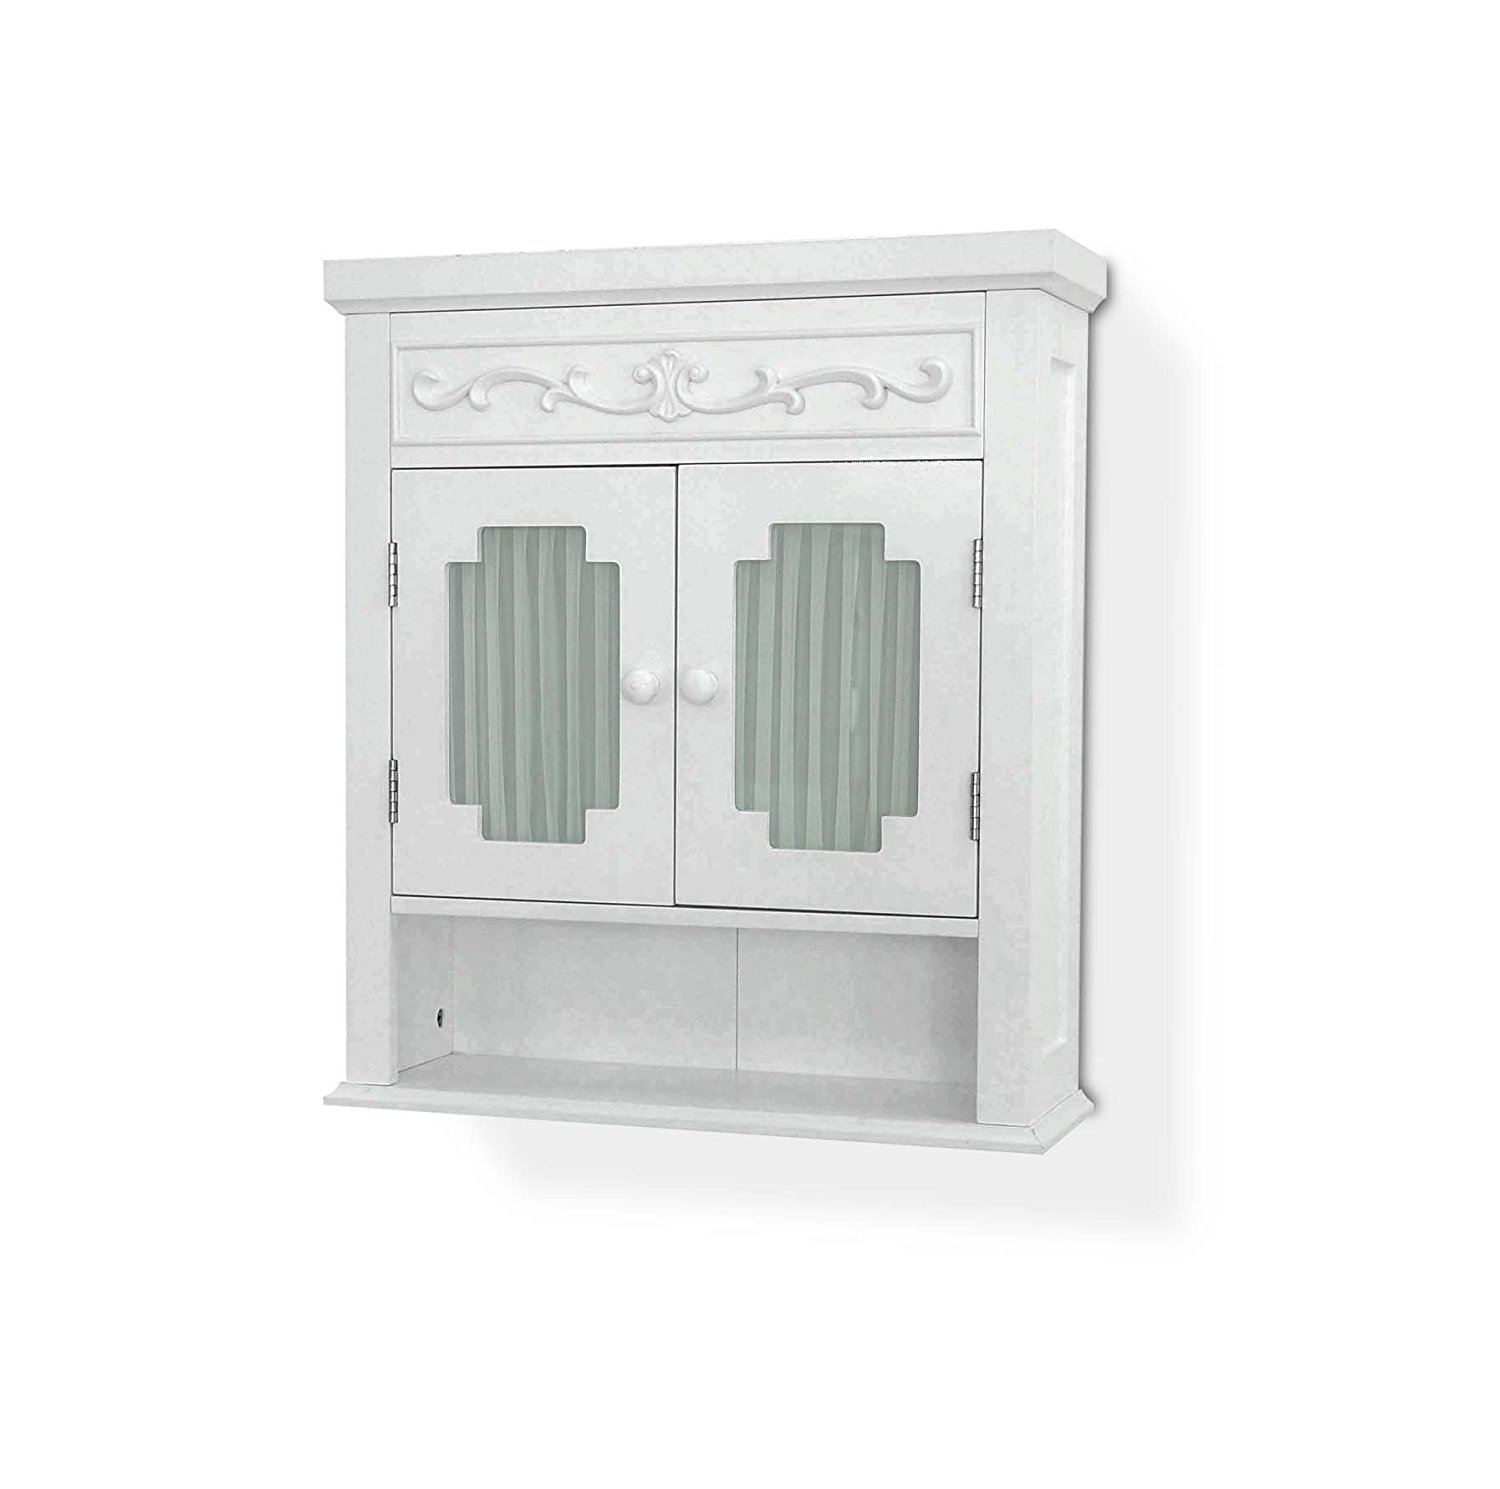 Elegant Home Fashions Lisbon Collection Shelved Wall Cabinet With Glass Paneled Doors White Walmart Com Walmart Com